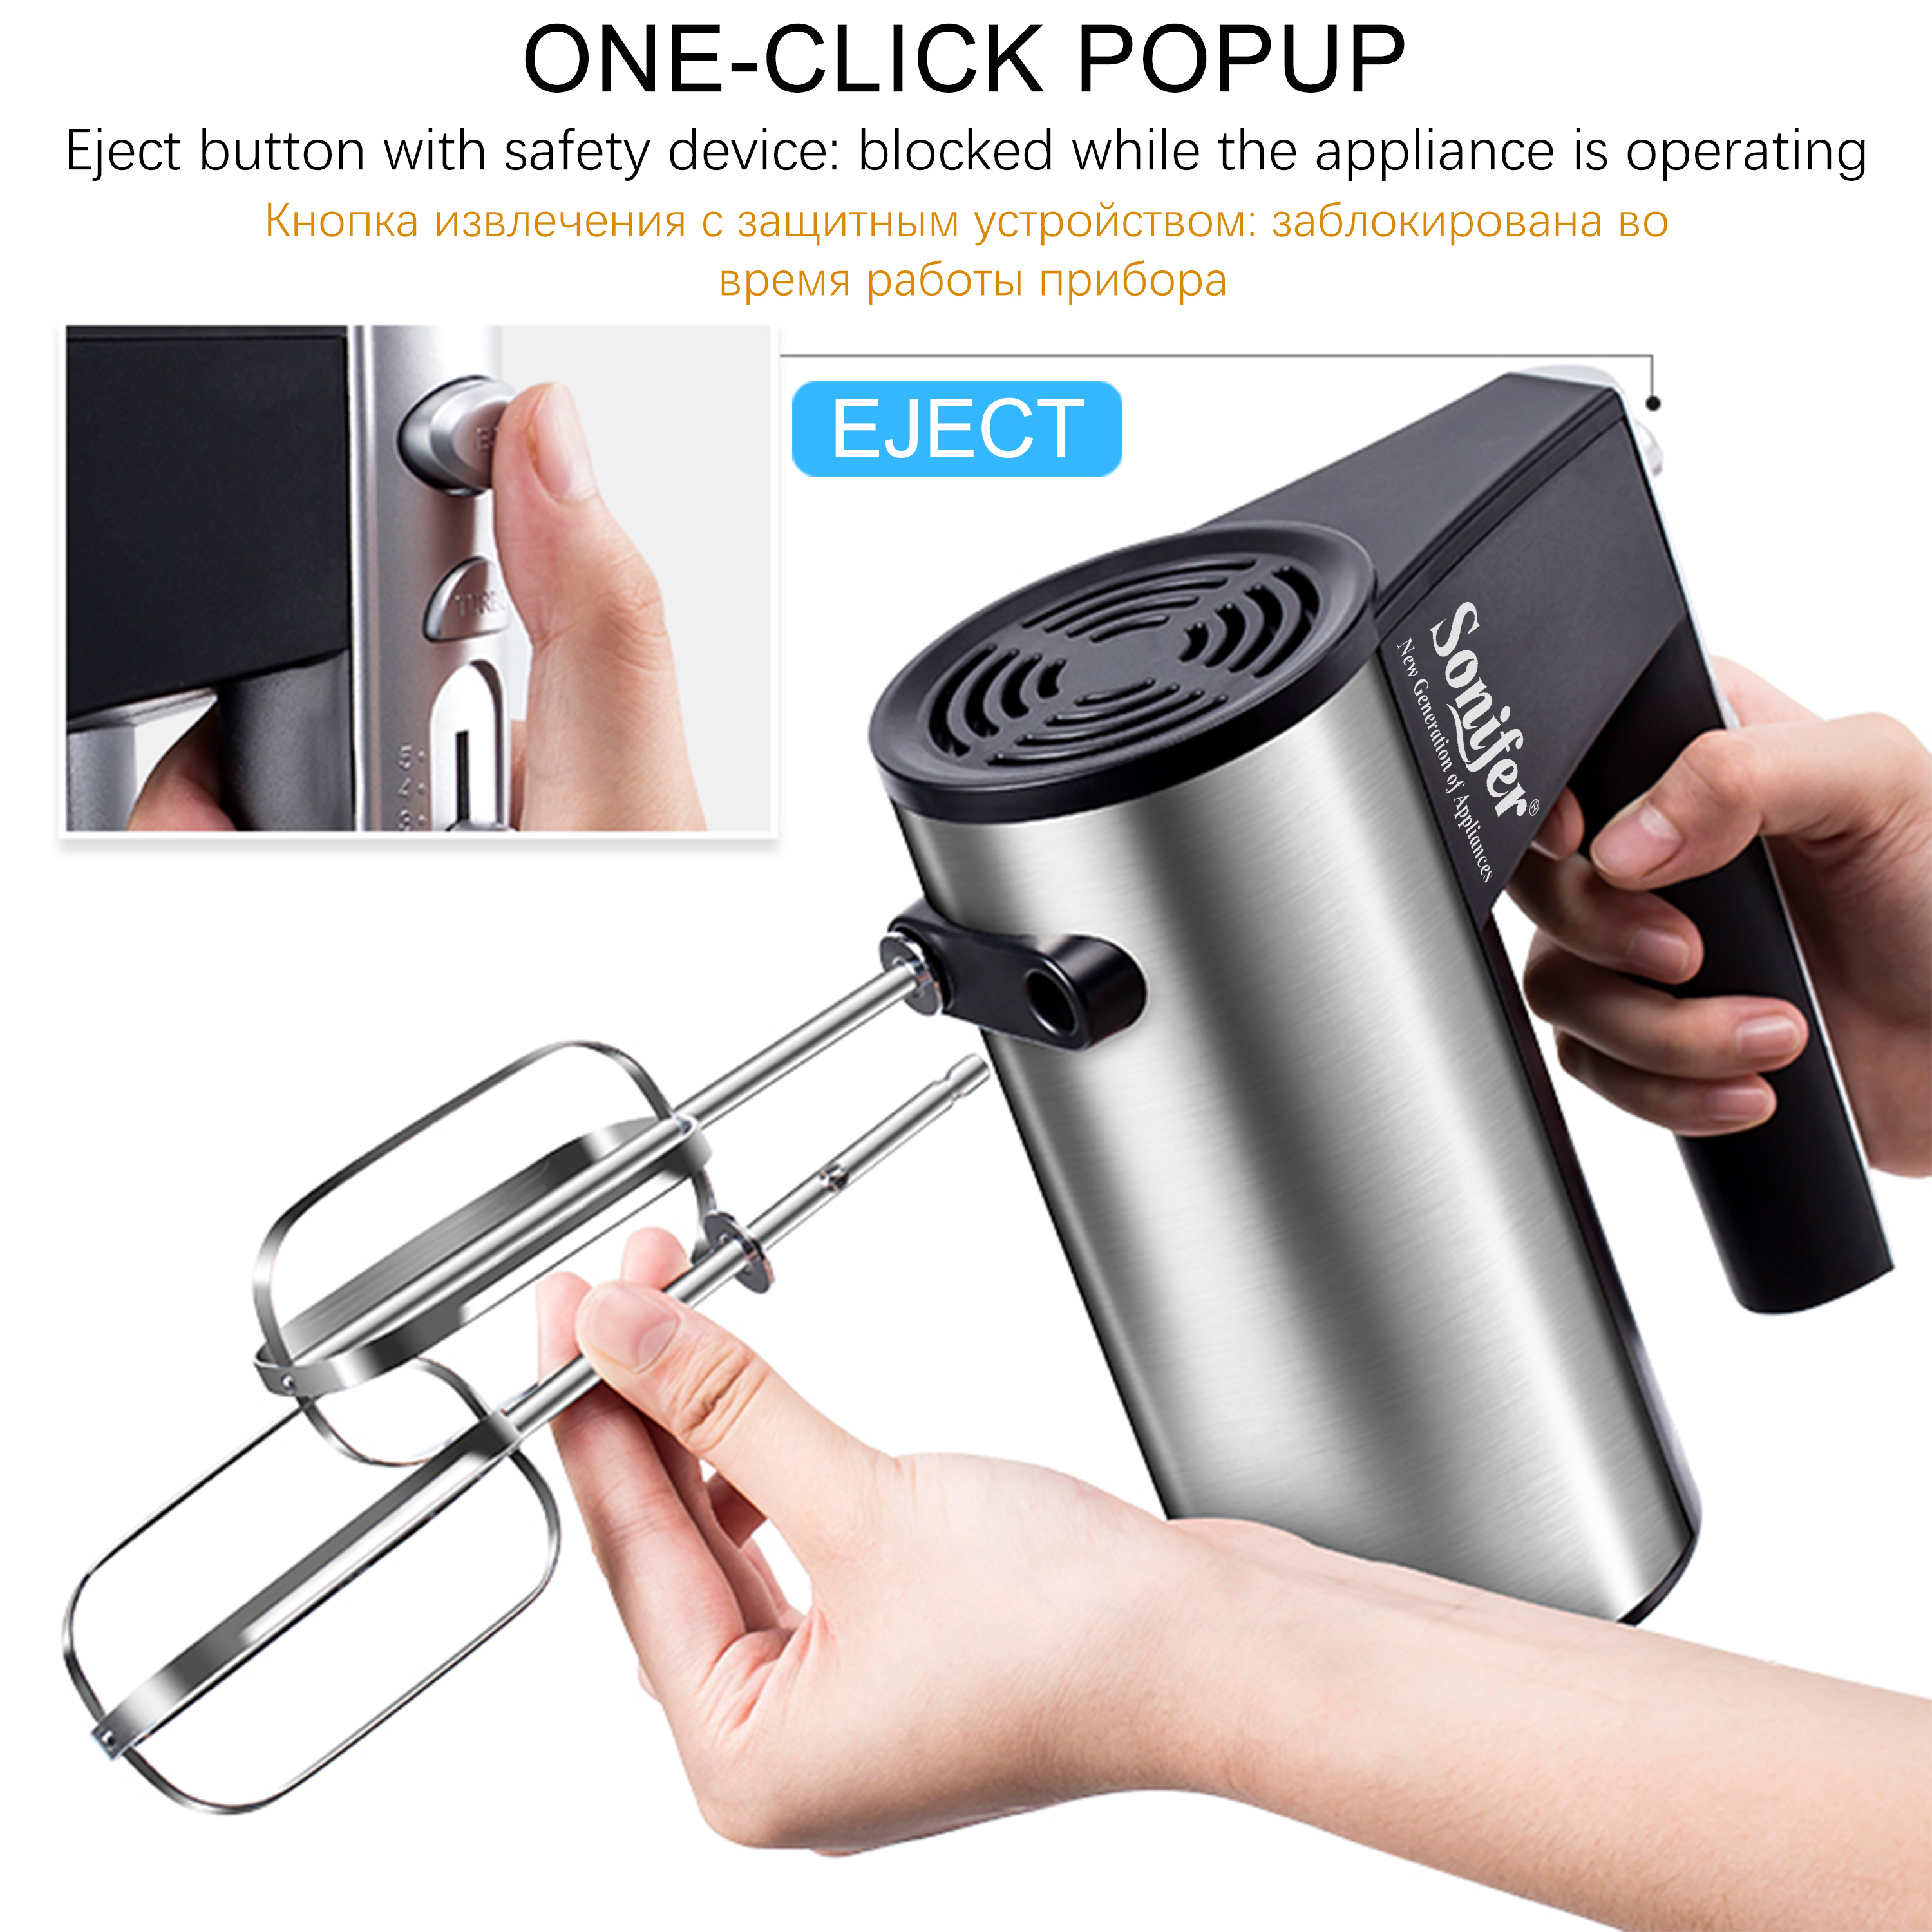 SONIFER Hand Mixer with Turbo Function and 5 Speed Control for Home Kitchen 10